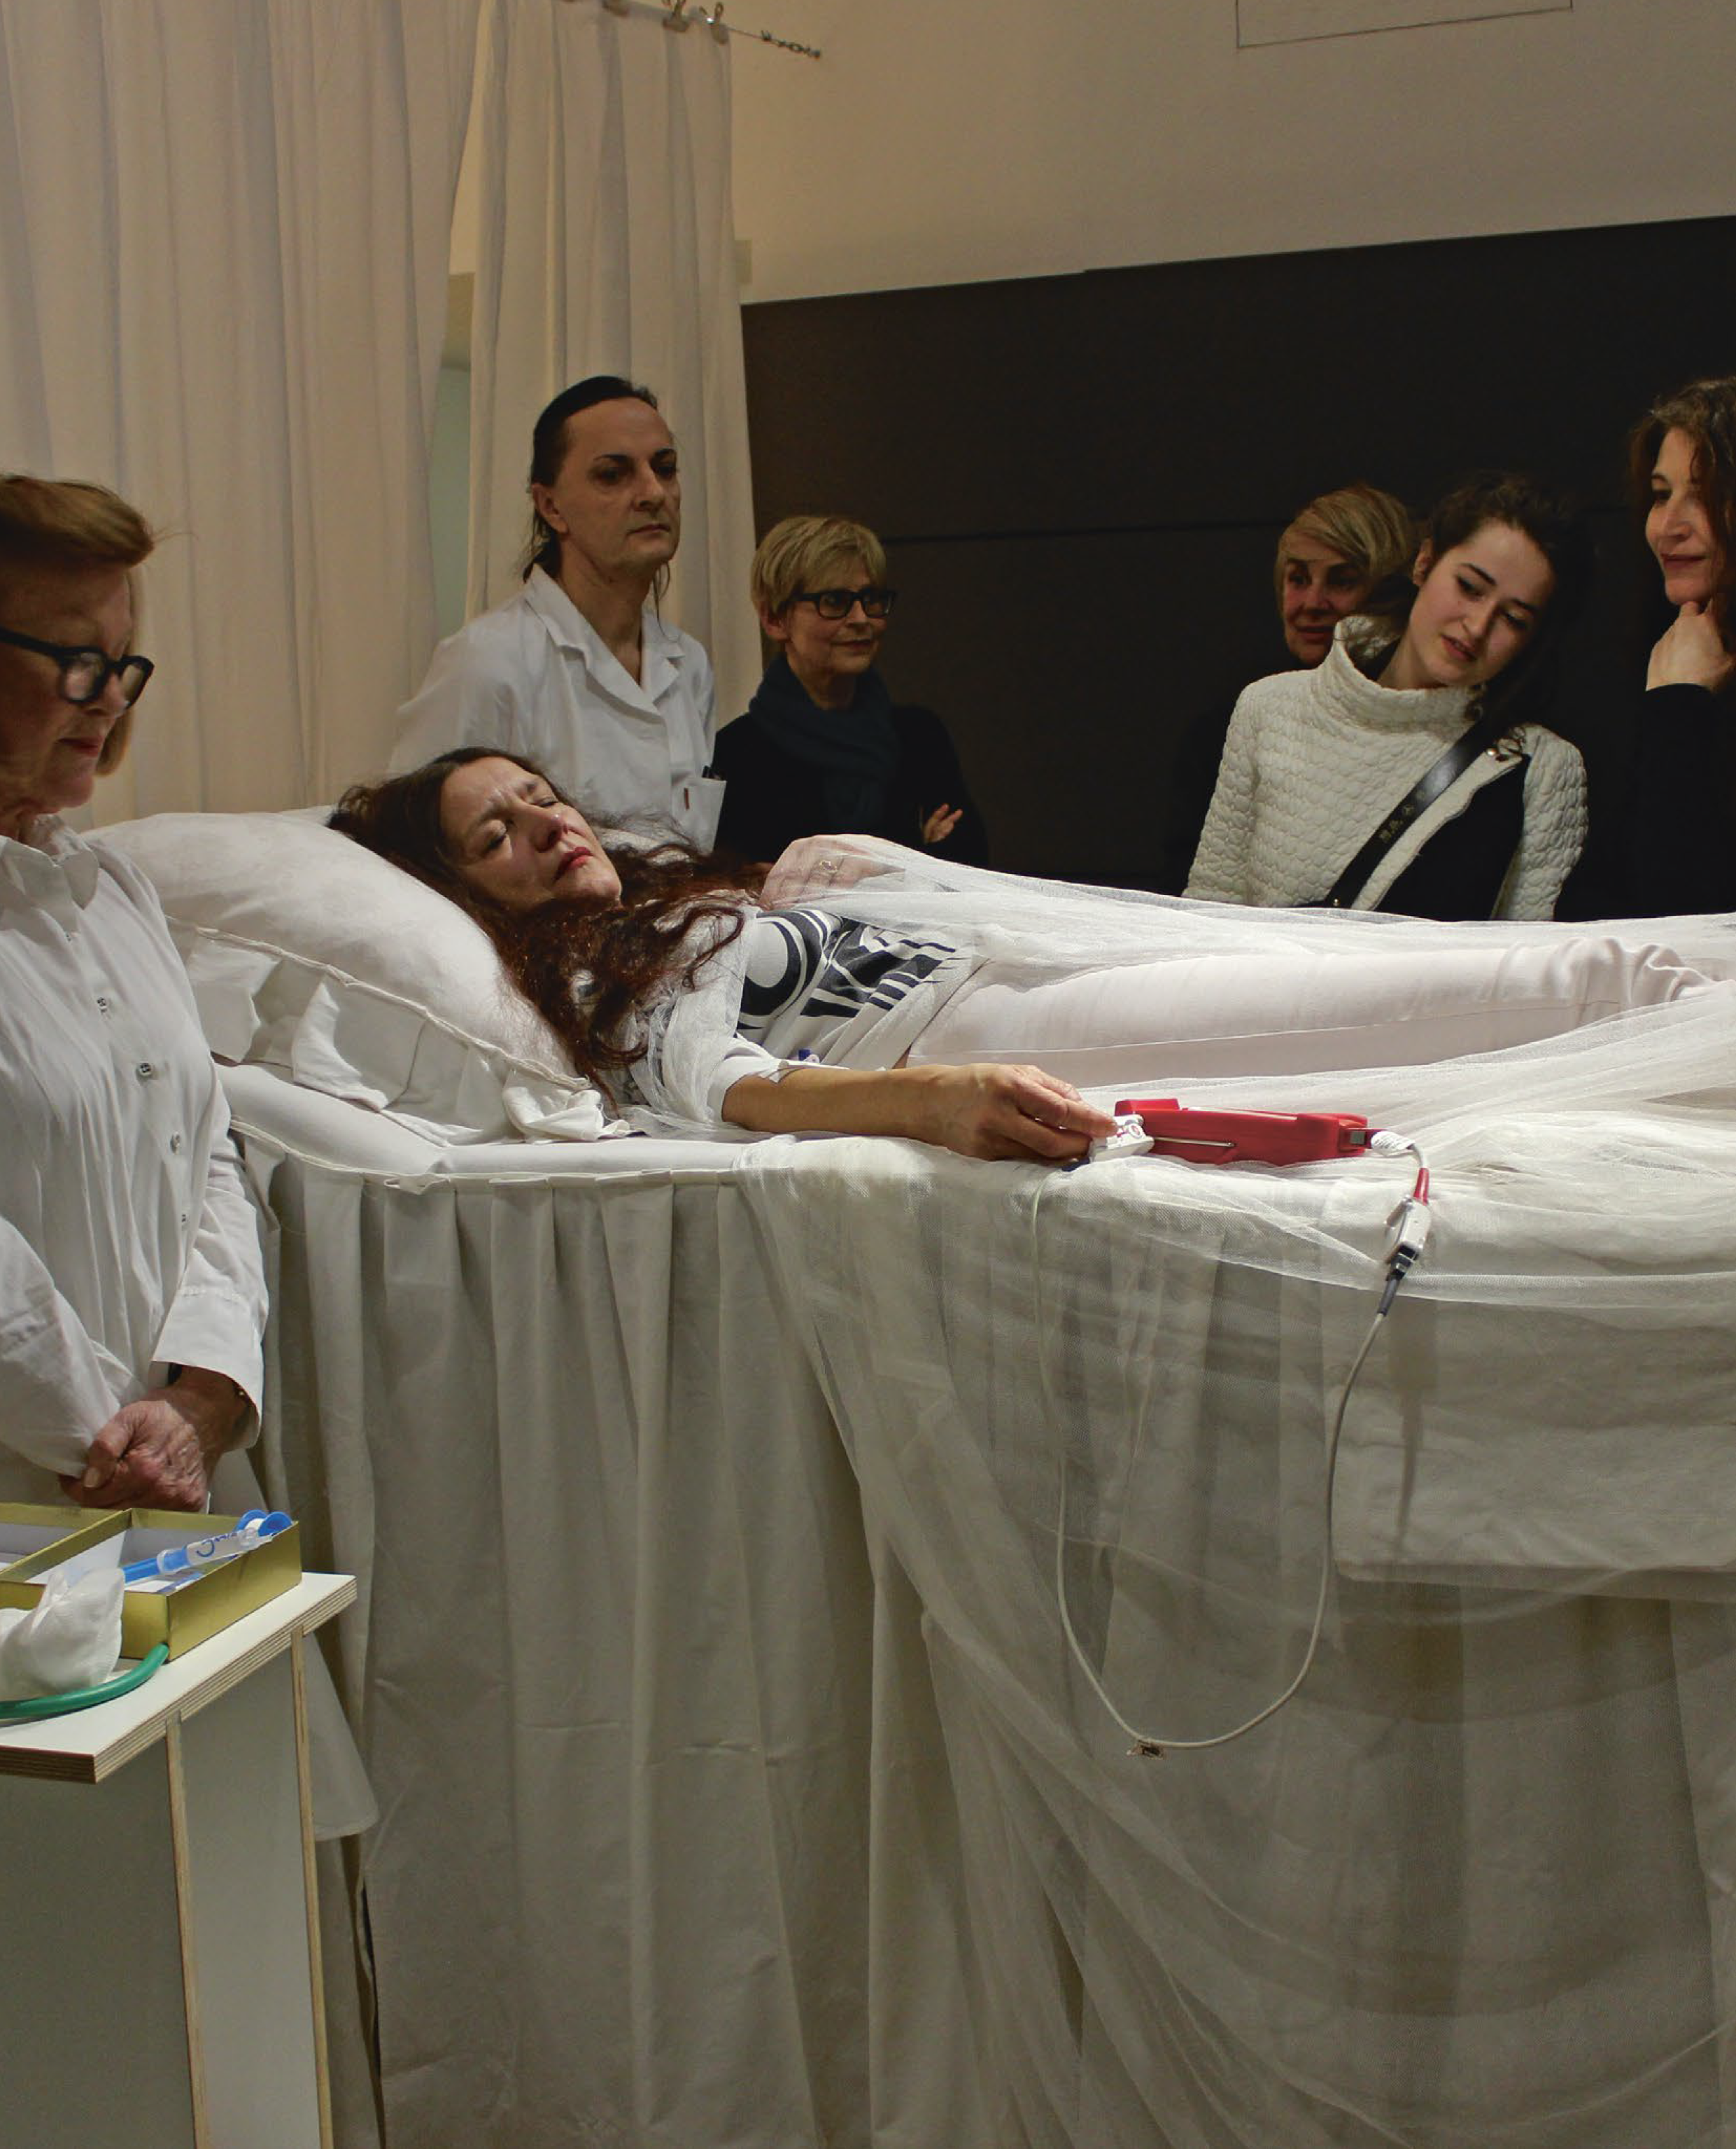 Zeitkunst_Samsonow_The Curator, the Anesthetist, the Artist & her Absence_The Artist as Medic. Elisabeth von Samsonow's Performance The Symptom and the Cure_Stuckey_Seite_19.png